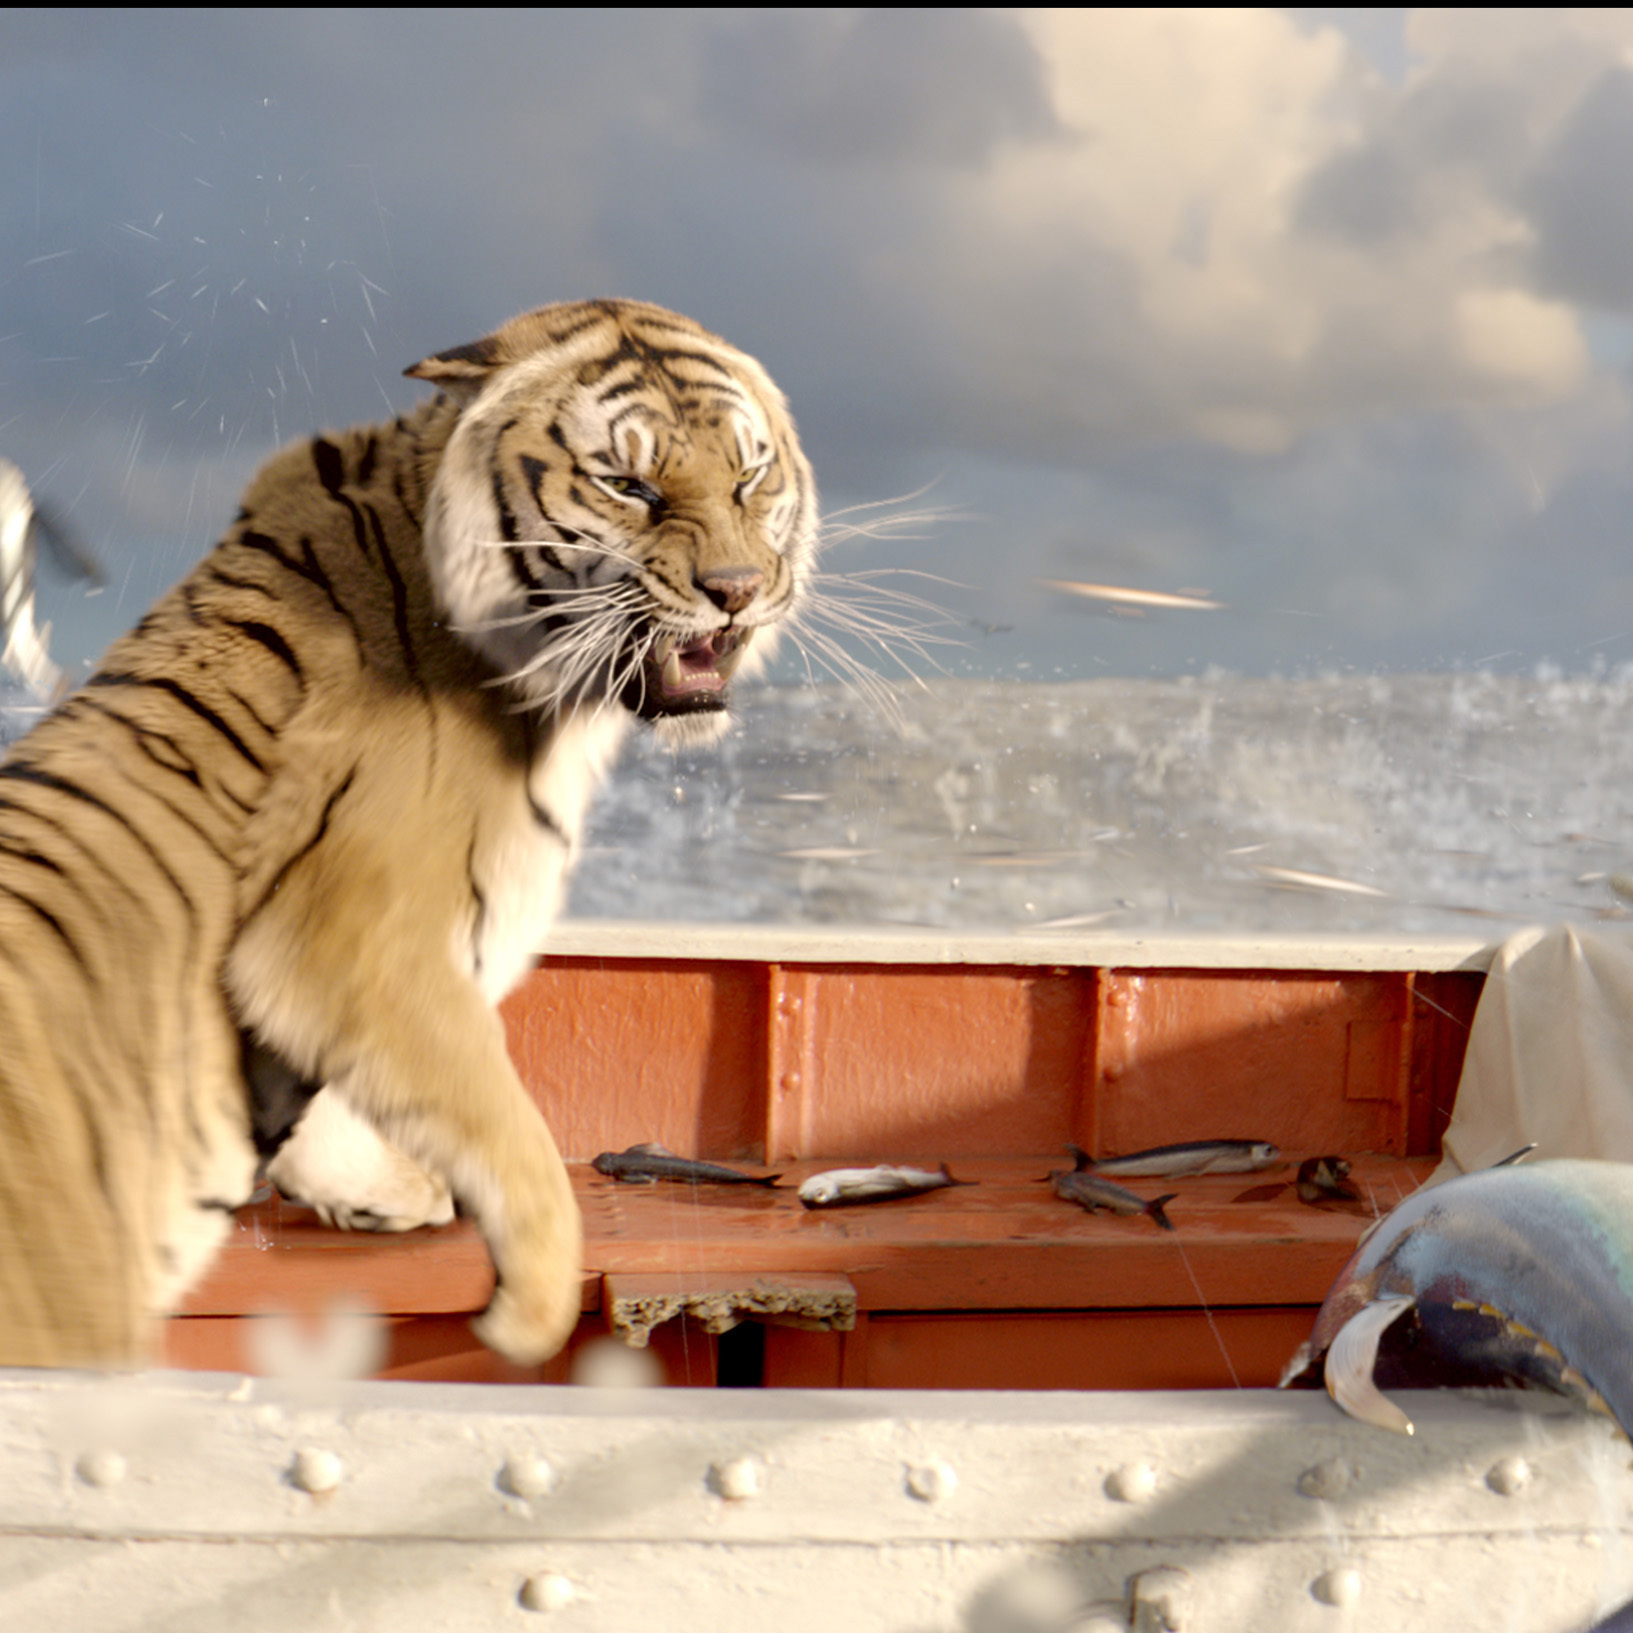 39 life of pi 39 life changing for young star ncpr news for Richard parker life of pi